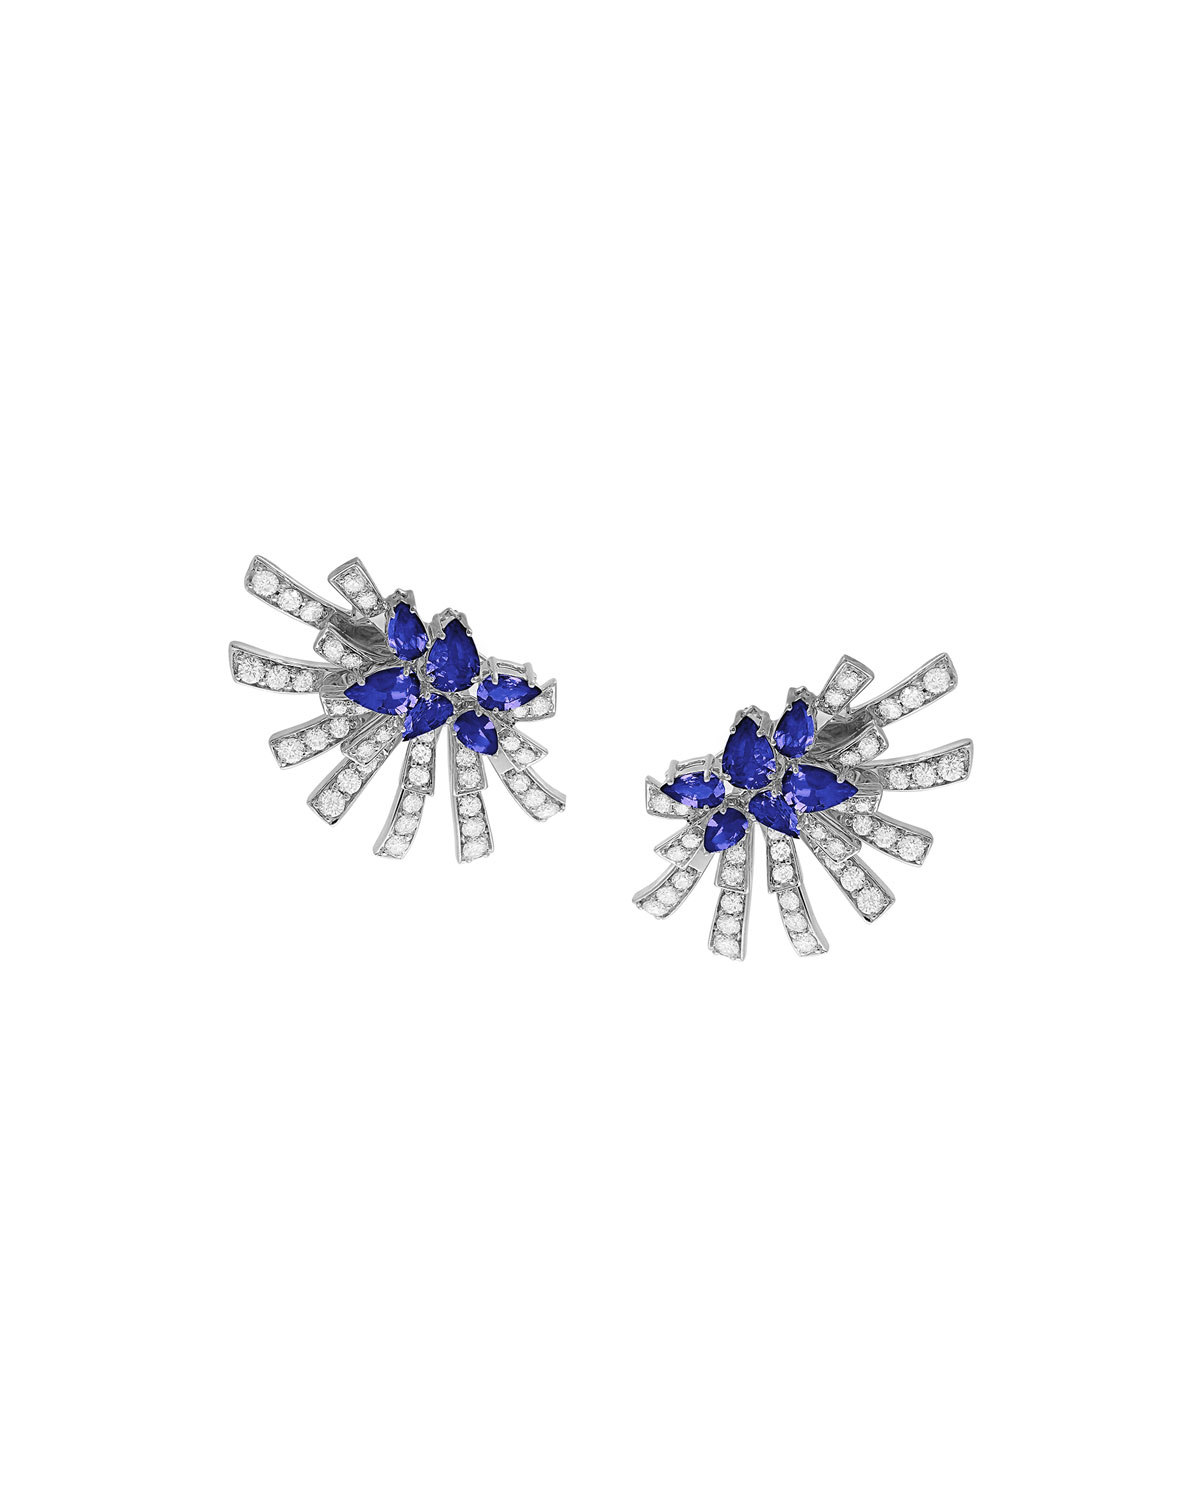 Mirage 18k White Gold Tanzanite and Diamond Cluster Earrings